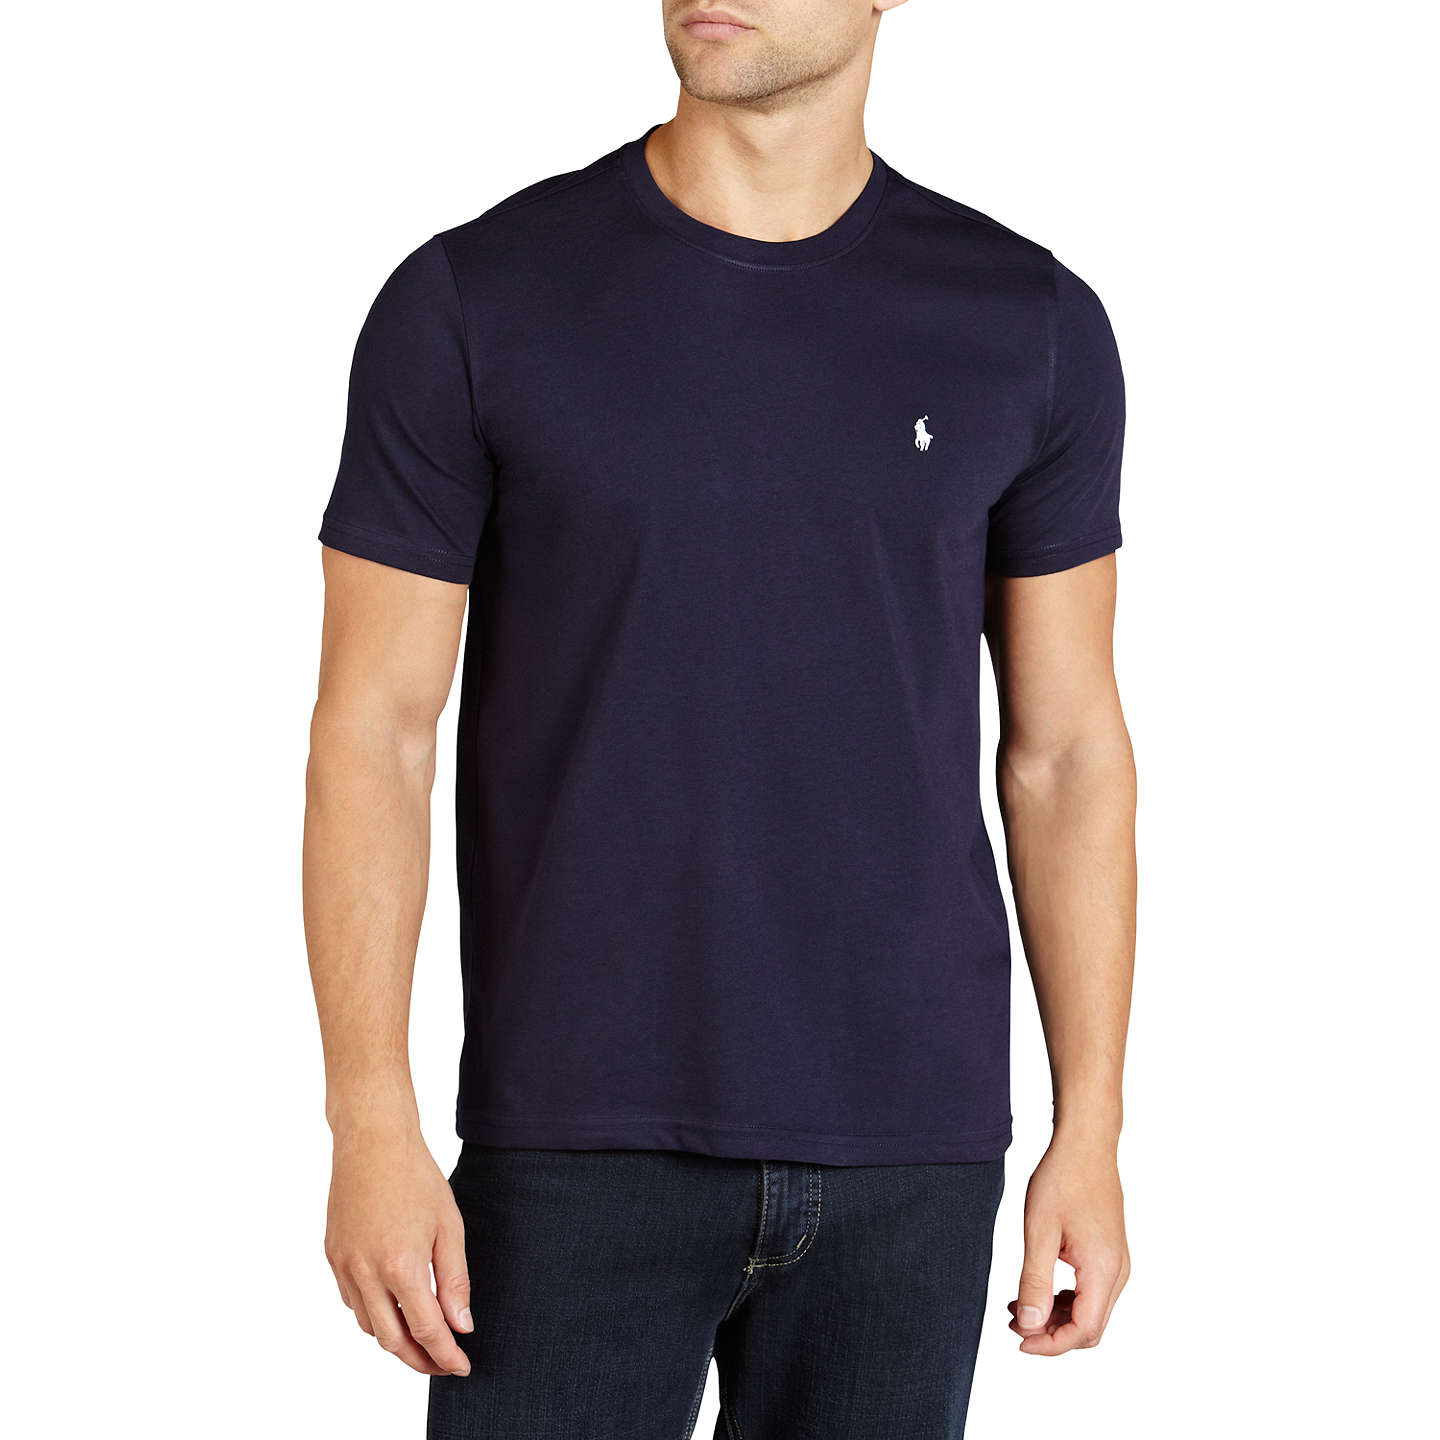 polo ralph lauren crew neck lounge t shirt navy at john lewis. Black Bedroom Furniture Sets. Home Design Ideas